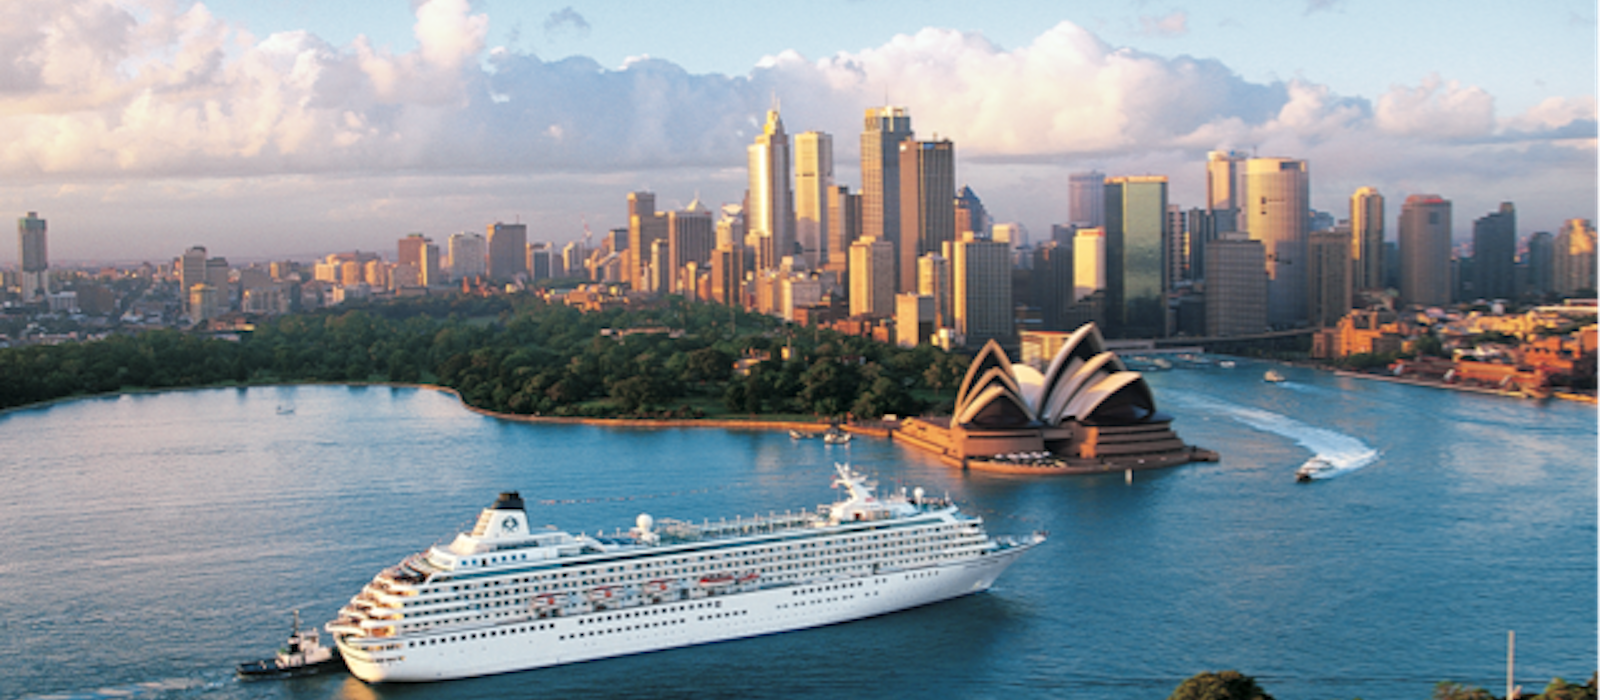 The Crystal Symphony in Sydney.